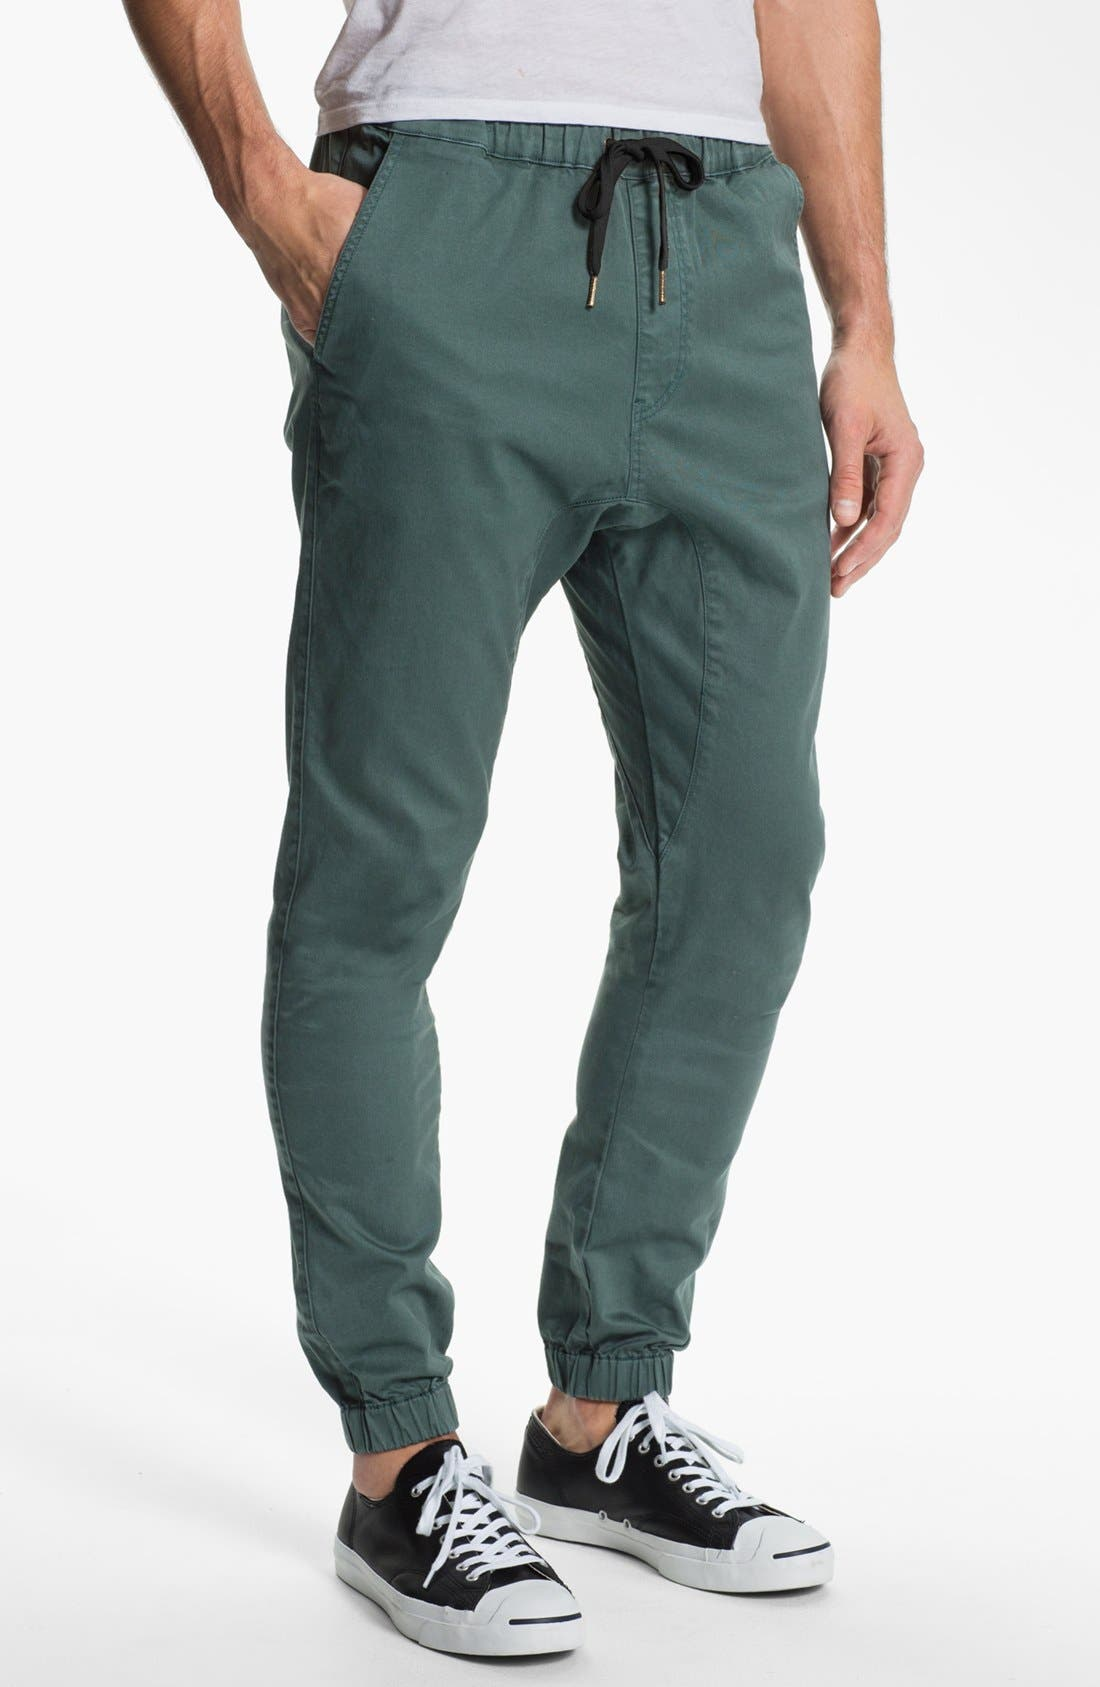 ZANEROBE 'Sureshot' Slim Tapered Leg Jogger Pants, Main, color, 460